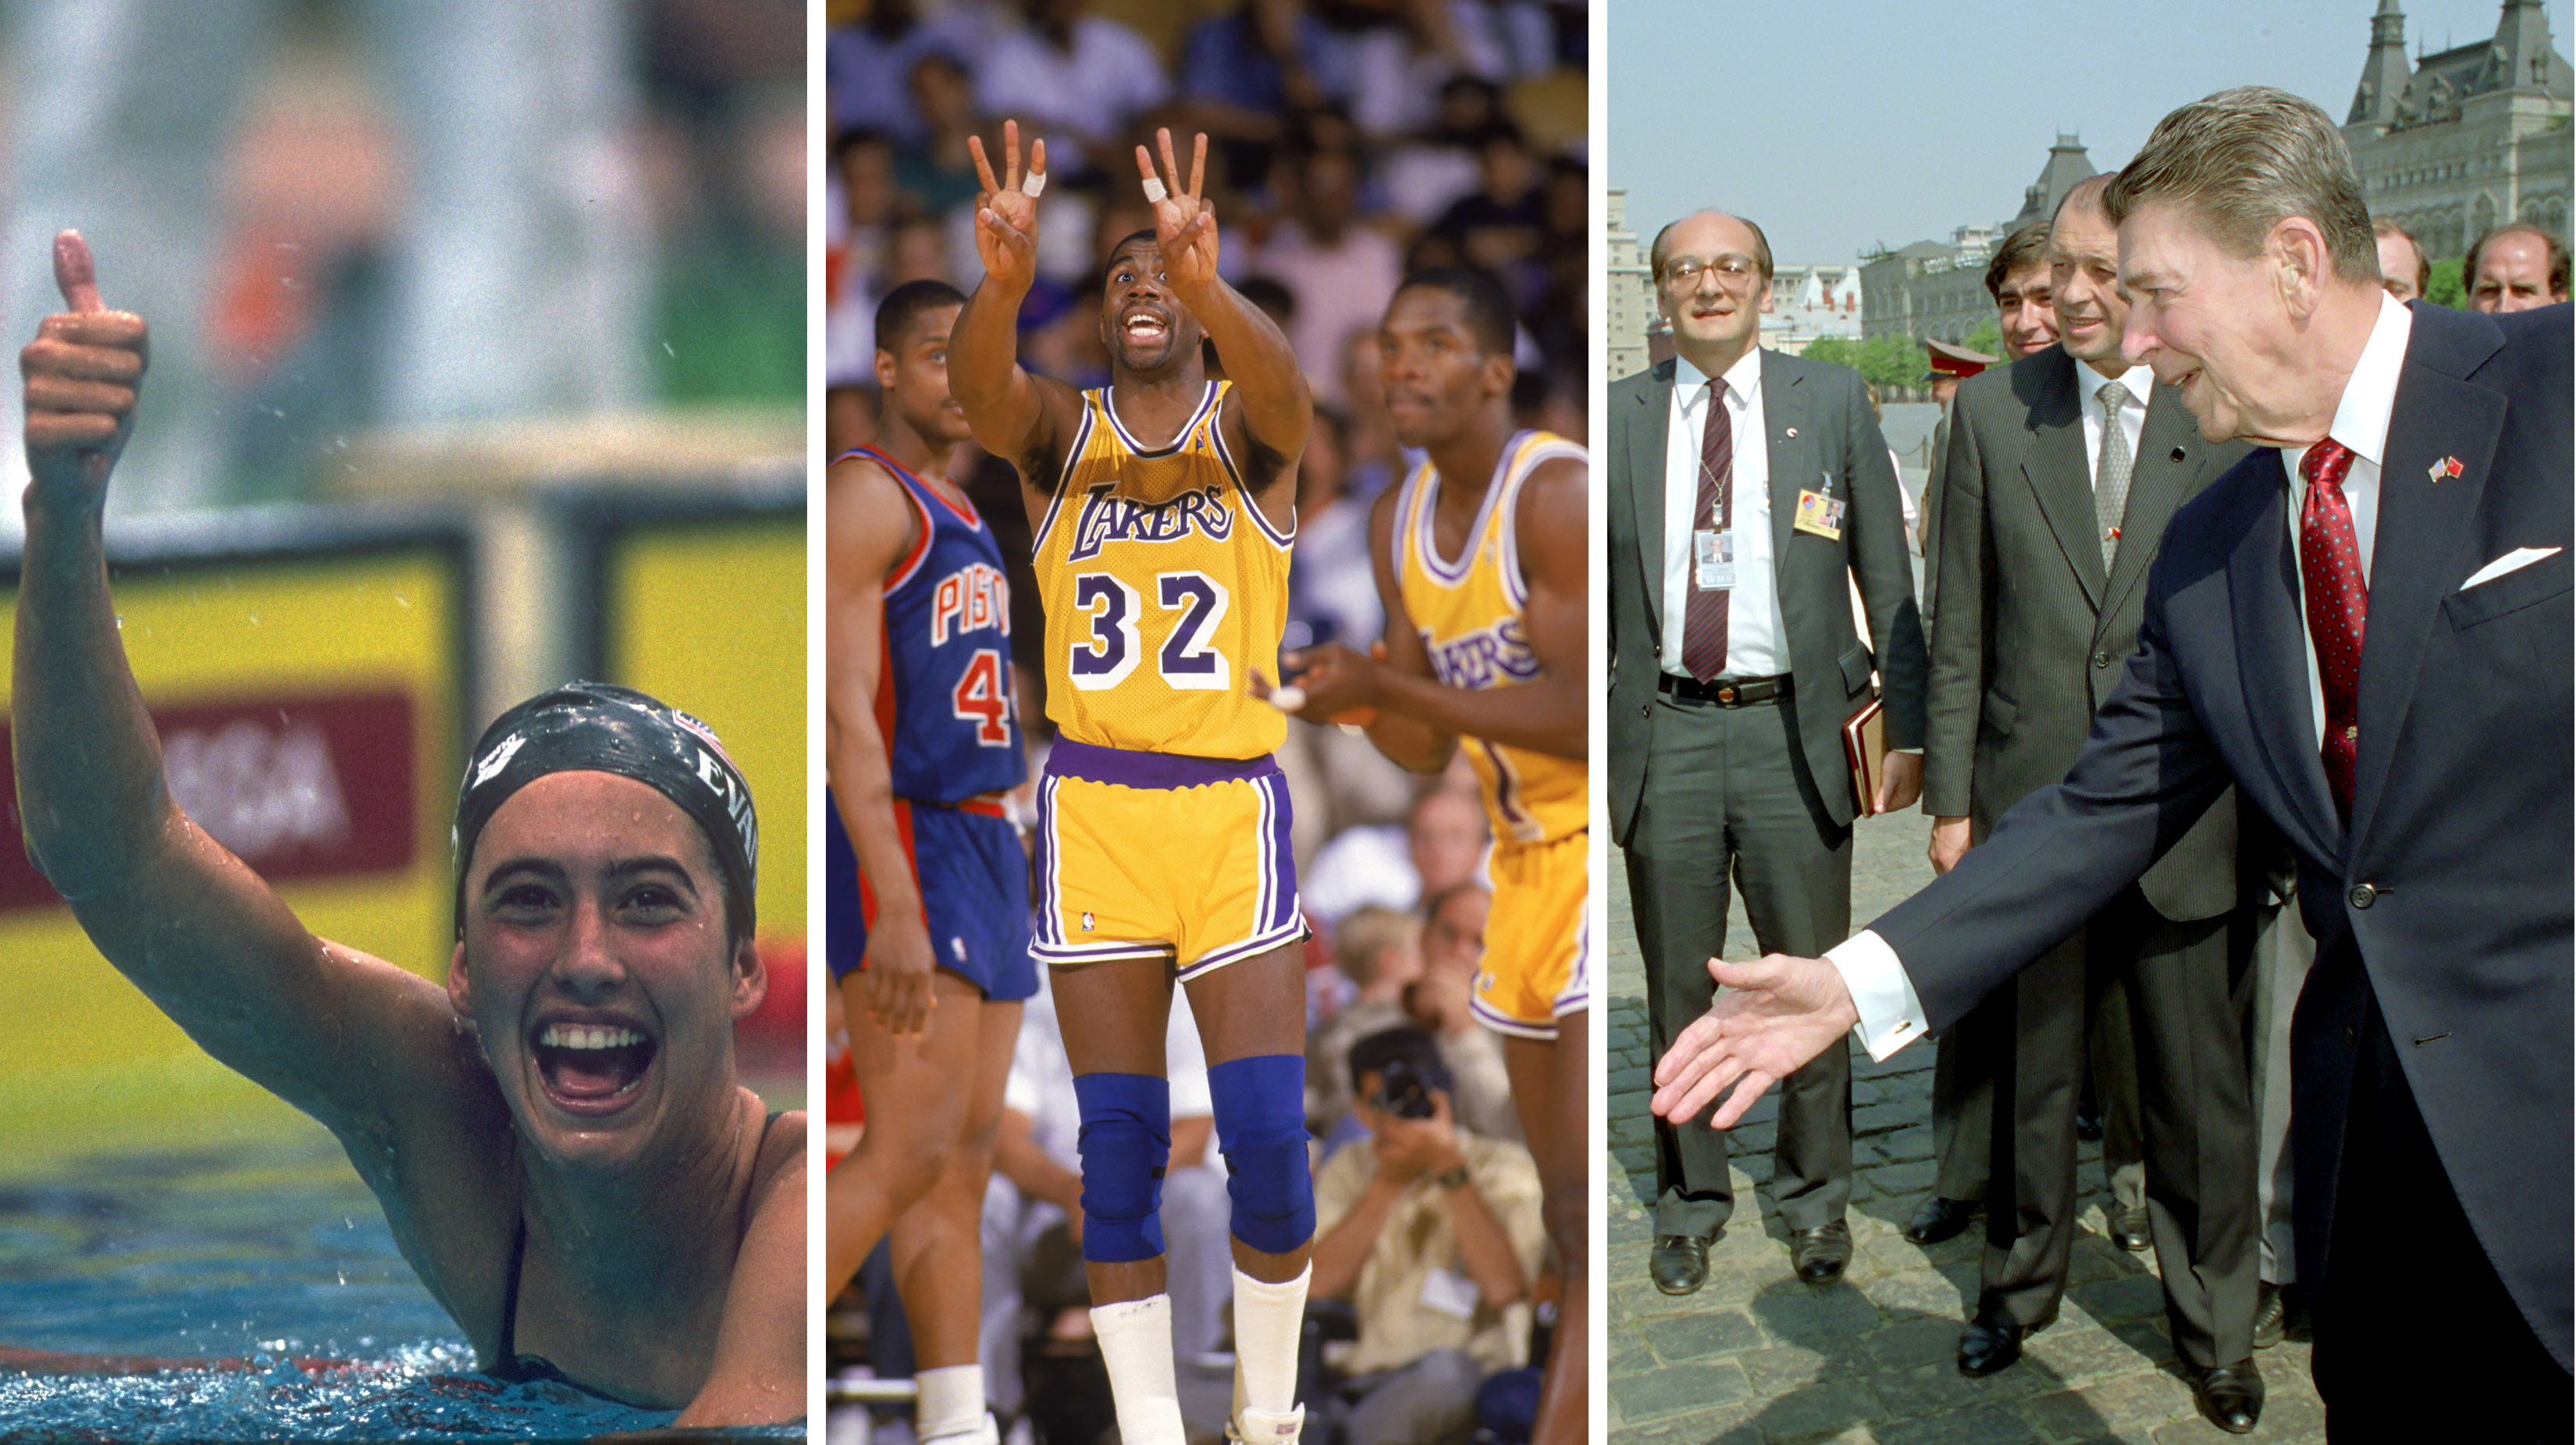 Swimmer Janet Evans captured three gold medals, Magic Johnson and the Lakers won another NBA title and President Reagan toured Red Square in Moscow, just few of the major events that happened in 1988 -- the last time the Dodgers were in the World Series.